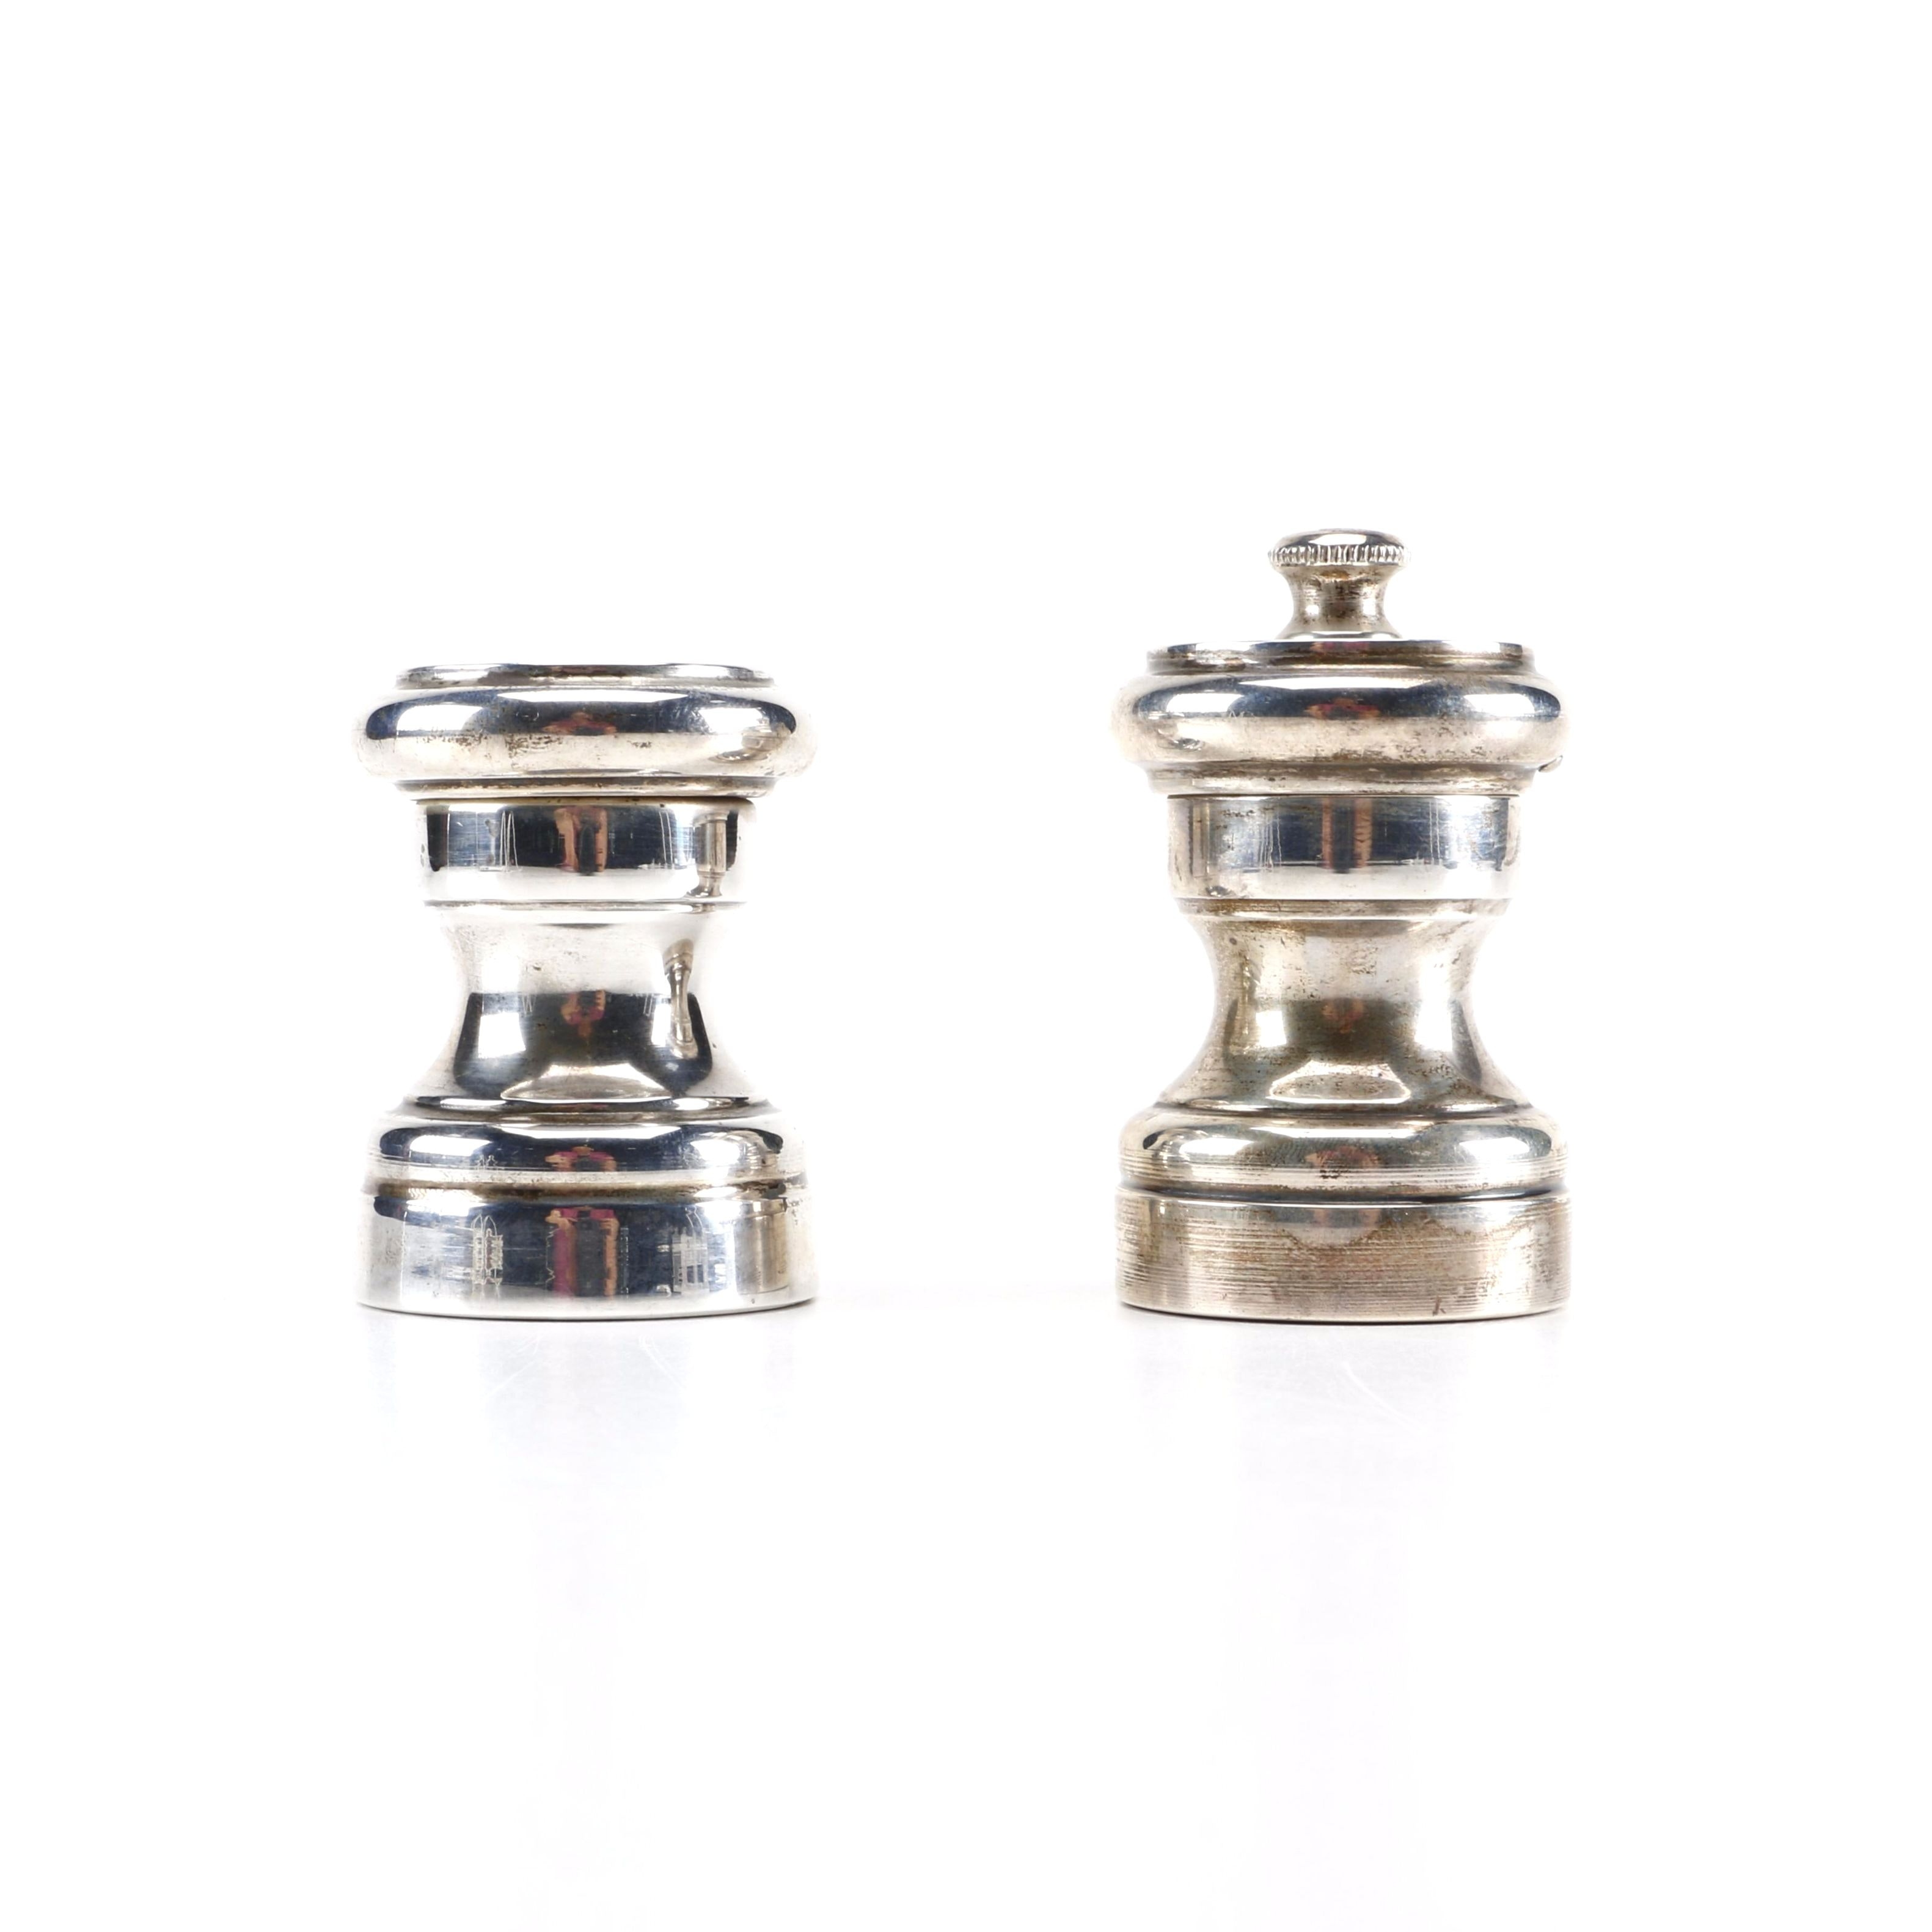 Tiffany & Co. Sterling Silver Salt Shaker and Pepper Mill